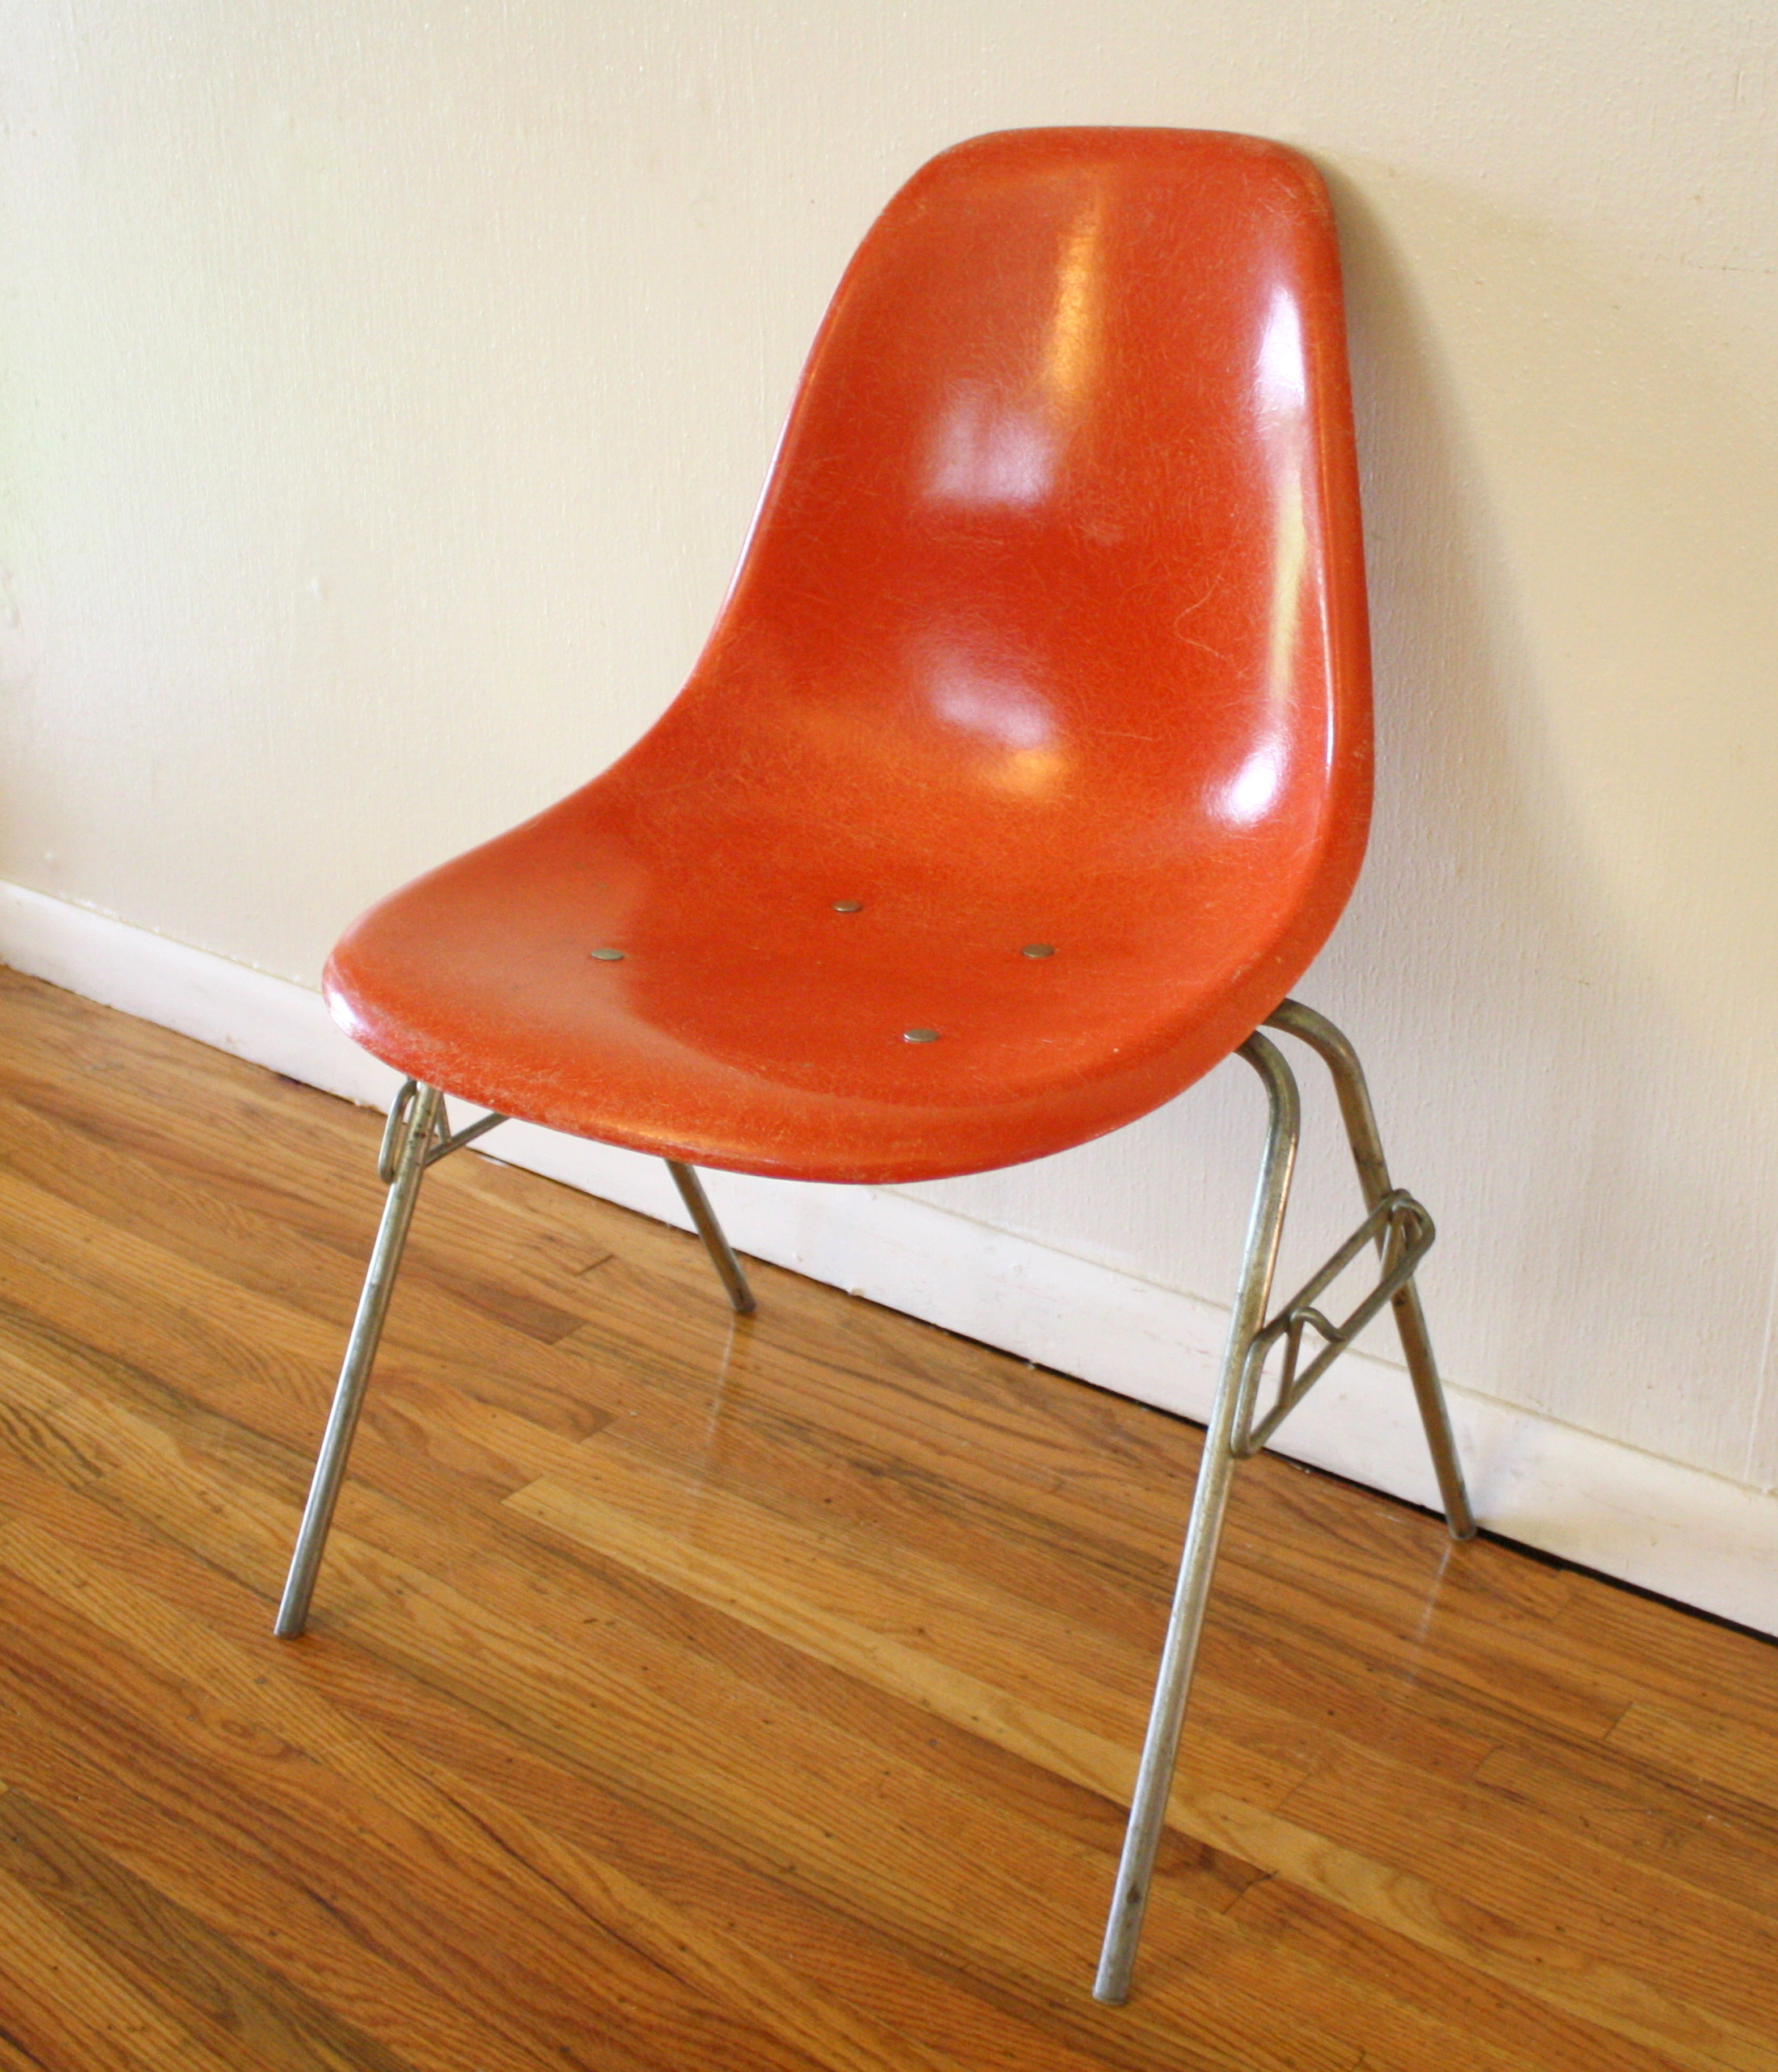 herman miller chairs vintage small bedroom chair ideas mid century modern fiberglass by